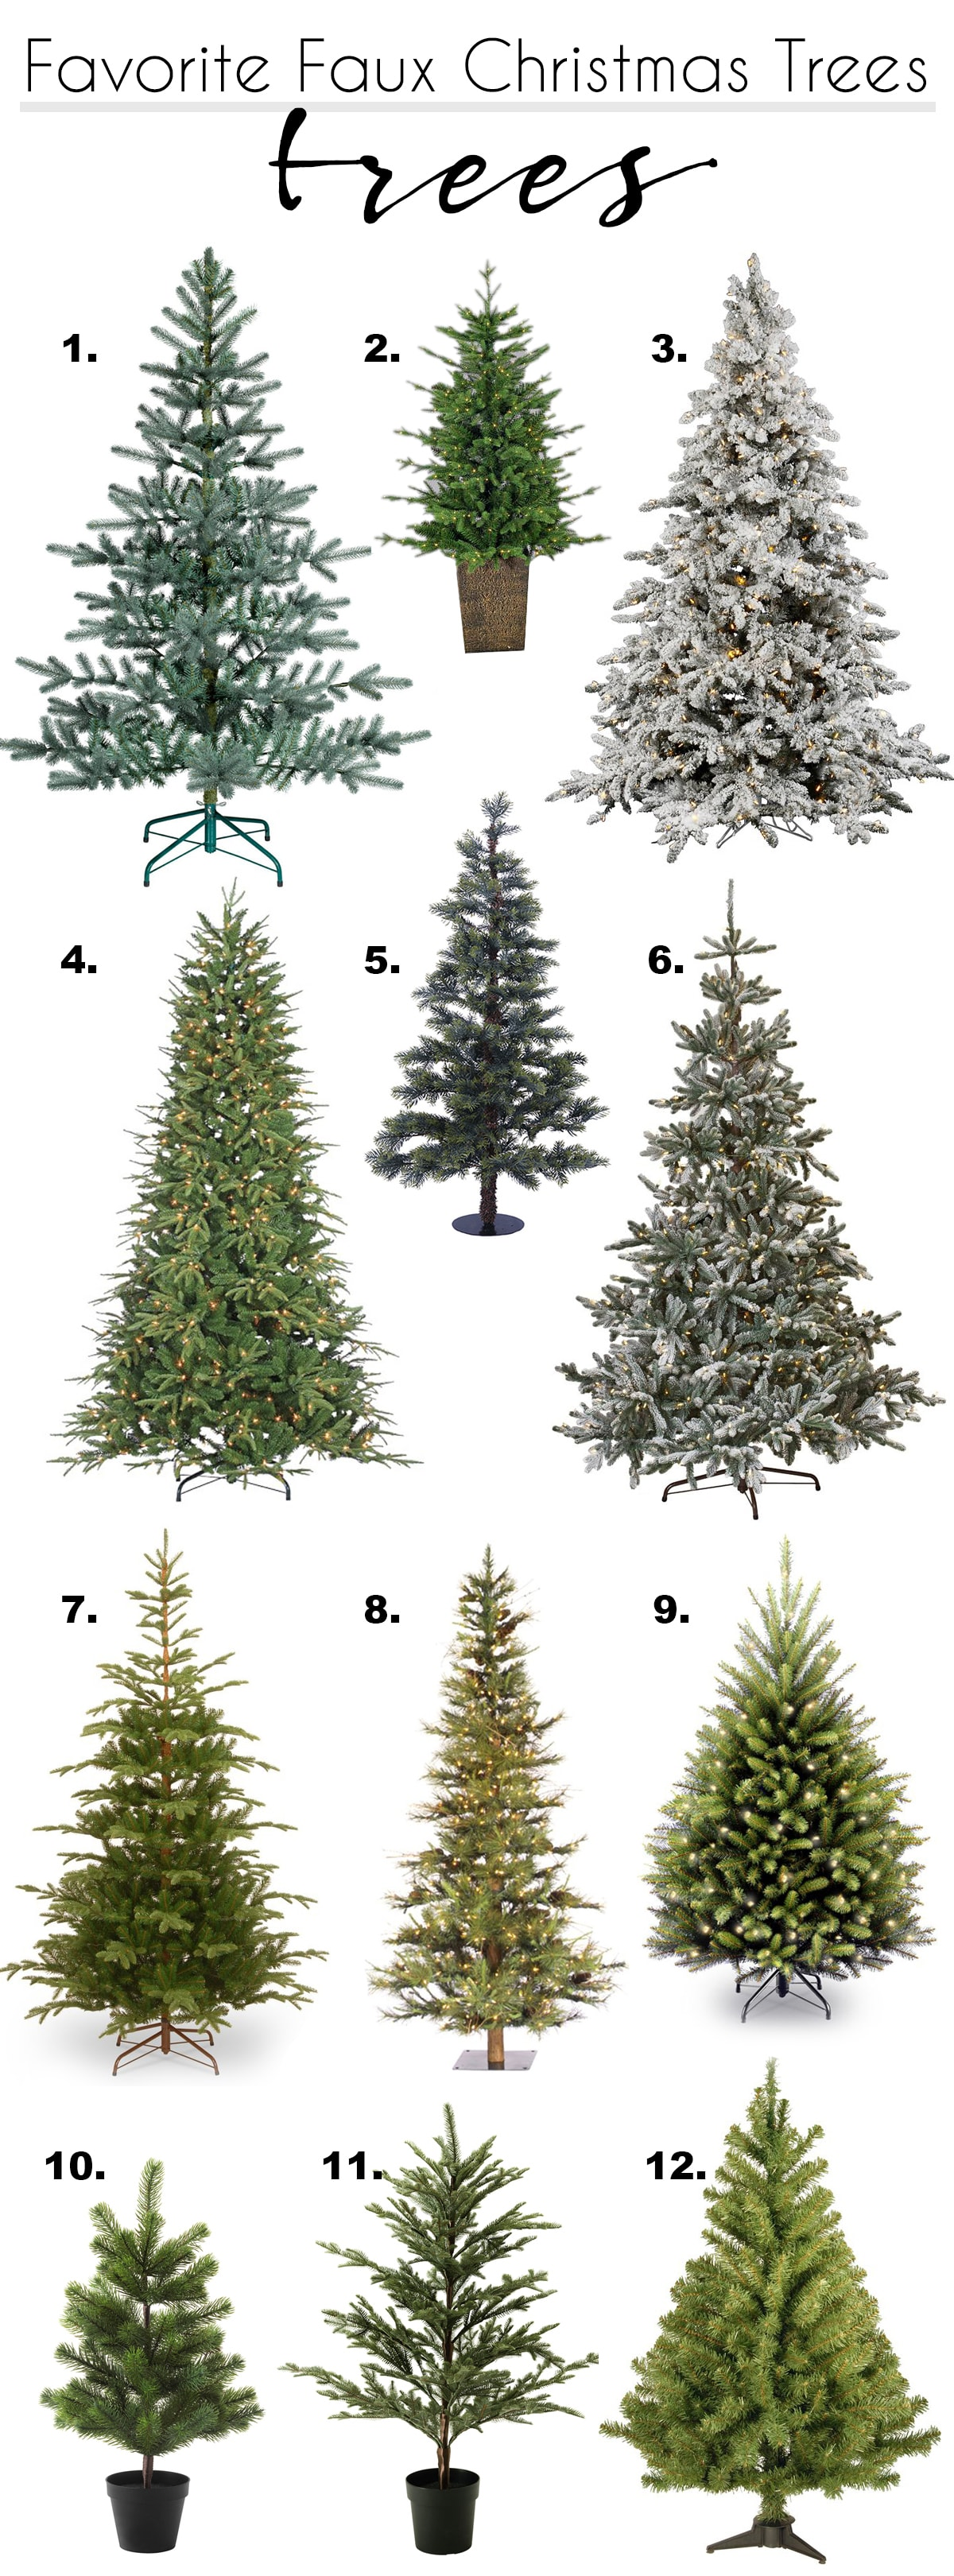 my favorite faux Christmas Trees   I own 3, 10 and 12 and love them